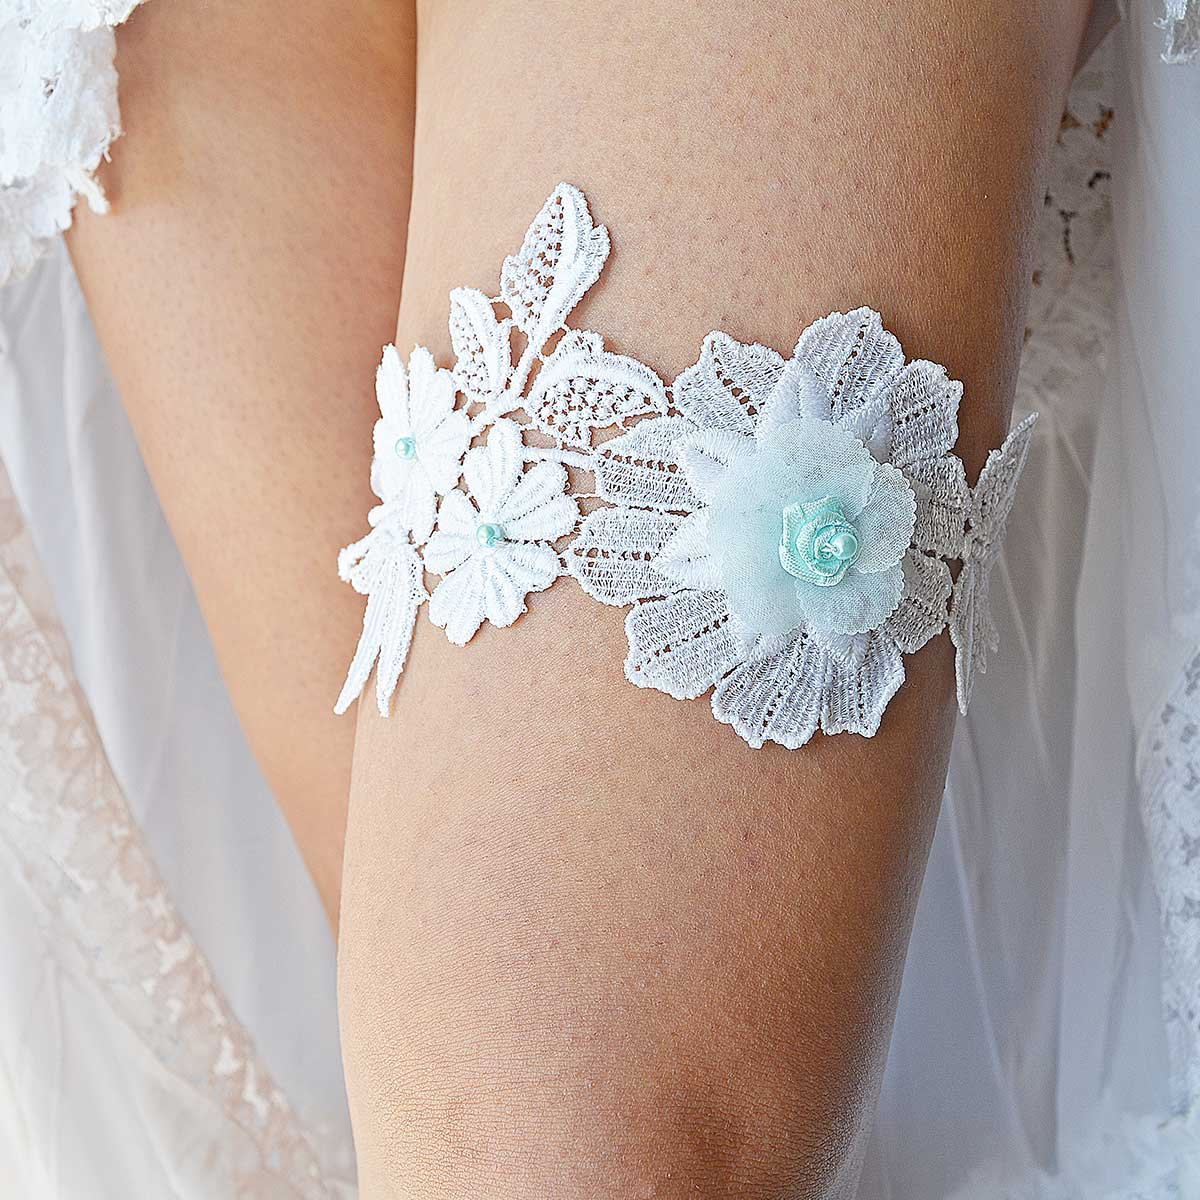 White Garter With Applique Lace & Aqua Blue Pearls & Flower - Wedding Garter - SuzannaM Designs